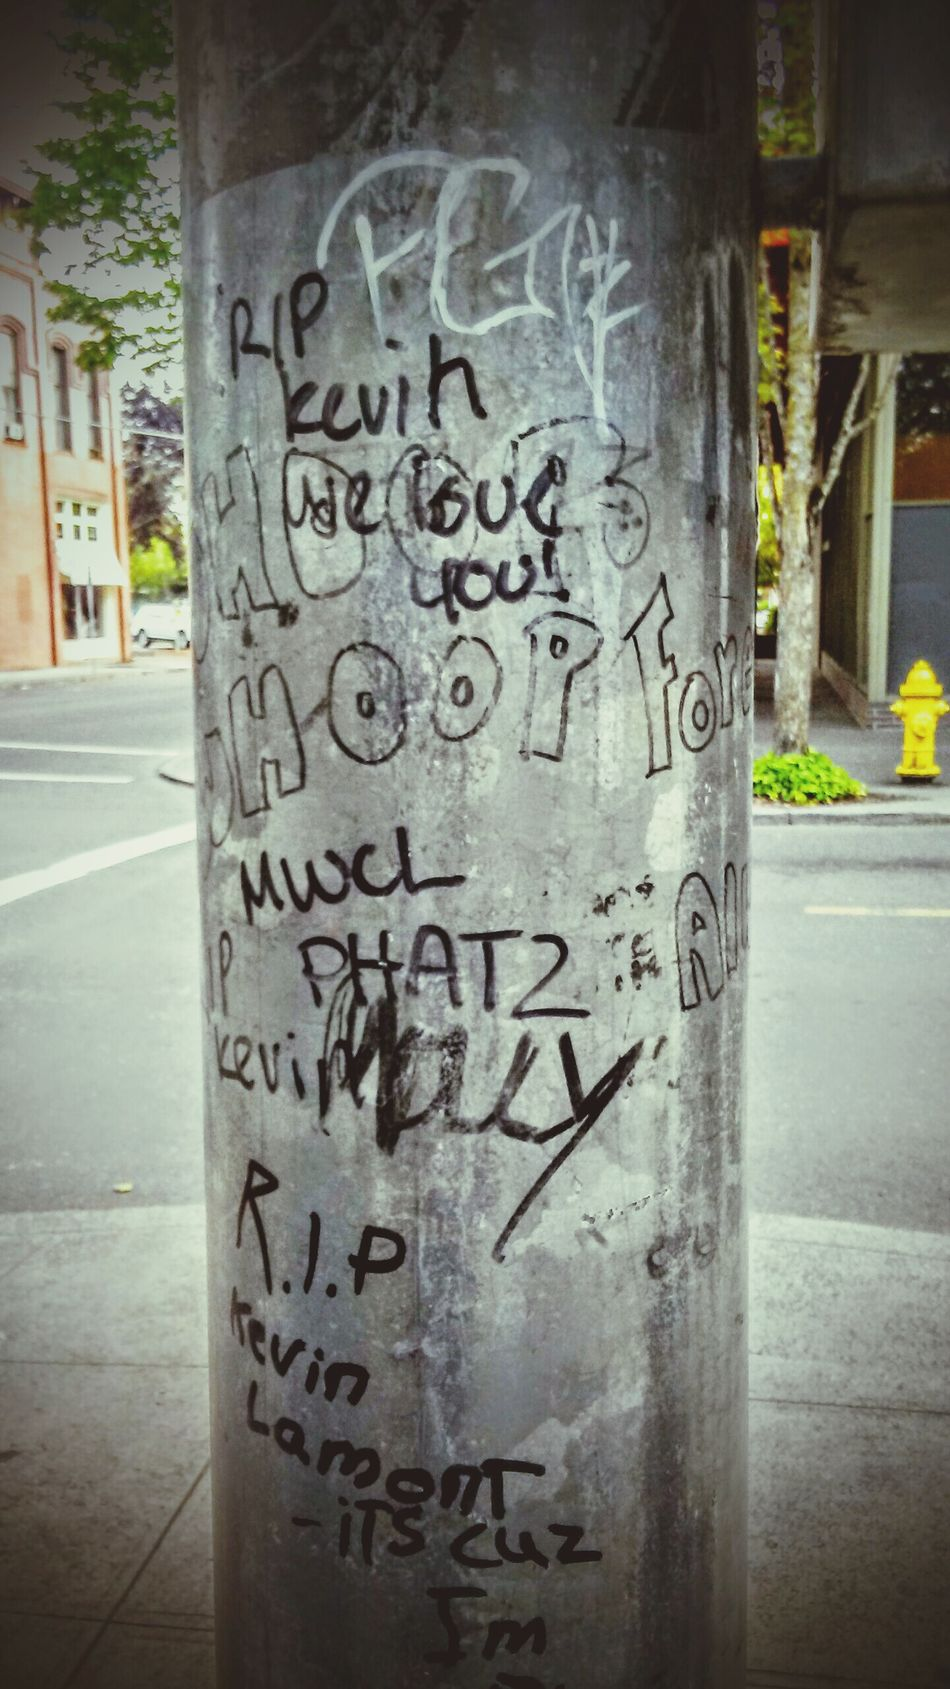 Lamppost Tagged Check This Out Downtown 3rd Street Casual Home Town Pride Locals Walking Home EyeEm GalleryThe Mix Up Gang Activity Taking Photos The Street Photographer - 2016 EyeEm Awards